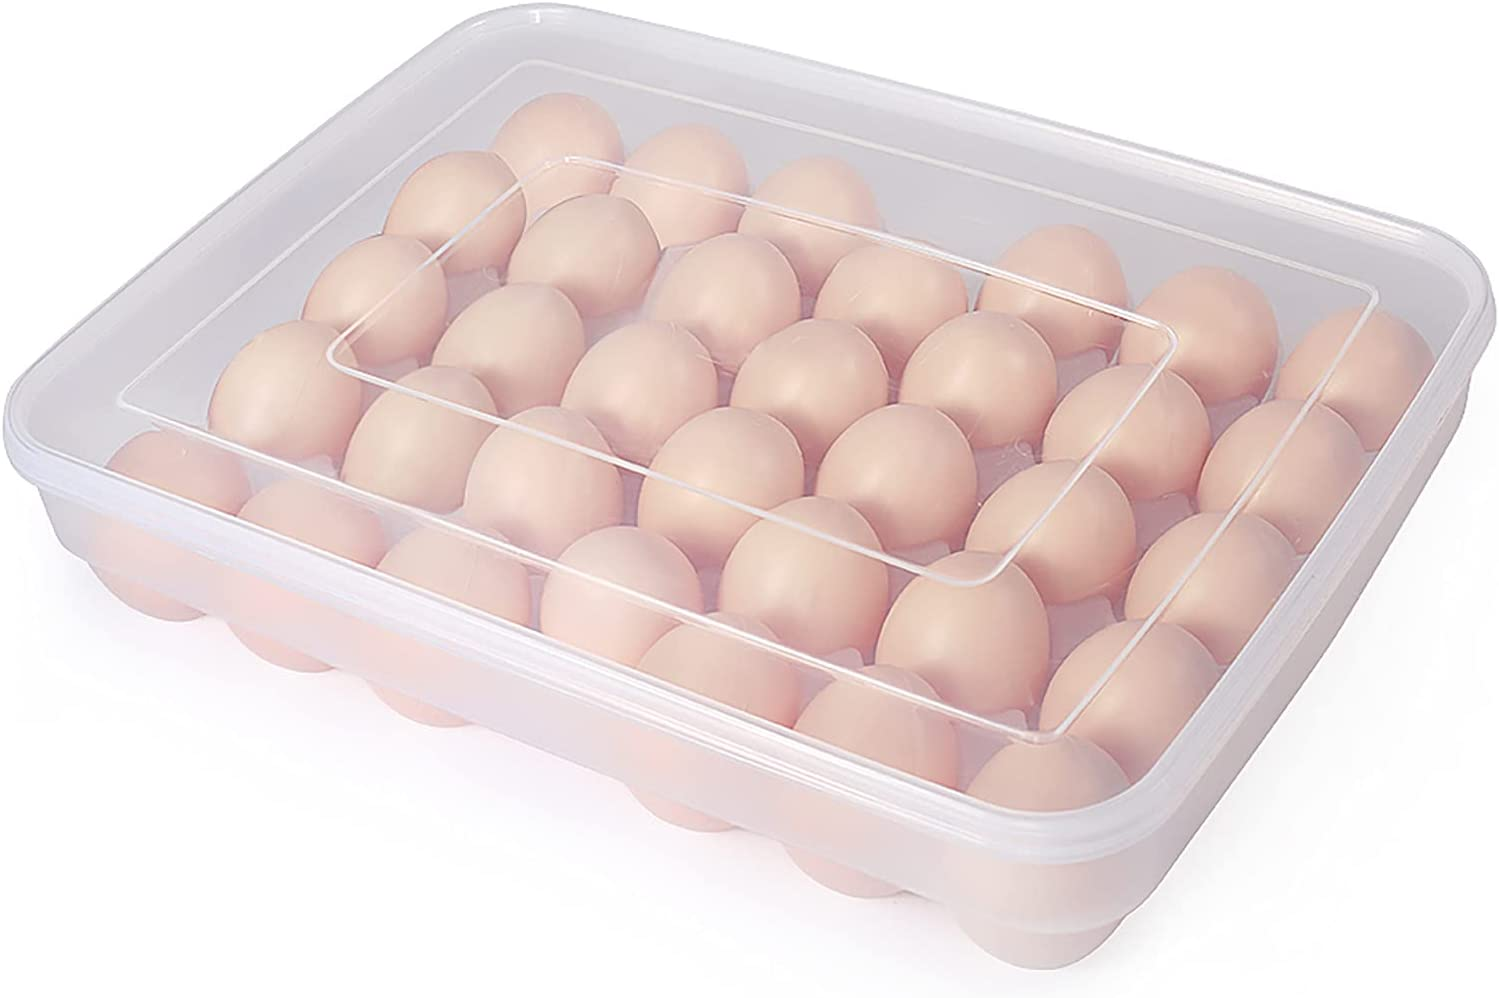 Details about  /Clear Plastic Egg Storage Box Container Holder Case for 8 Eggs